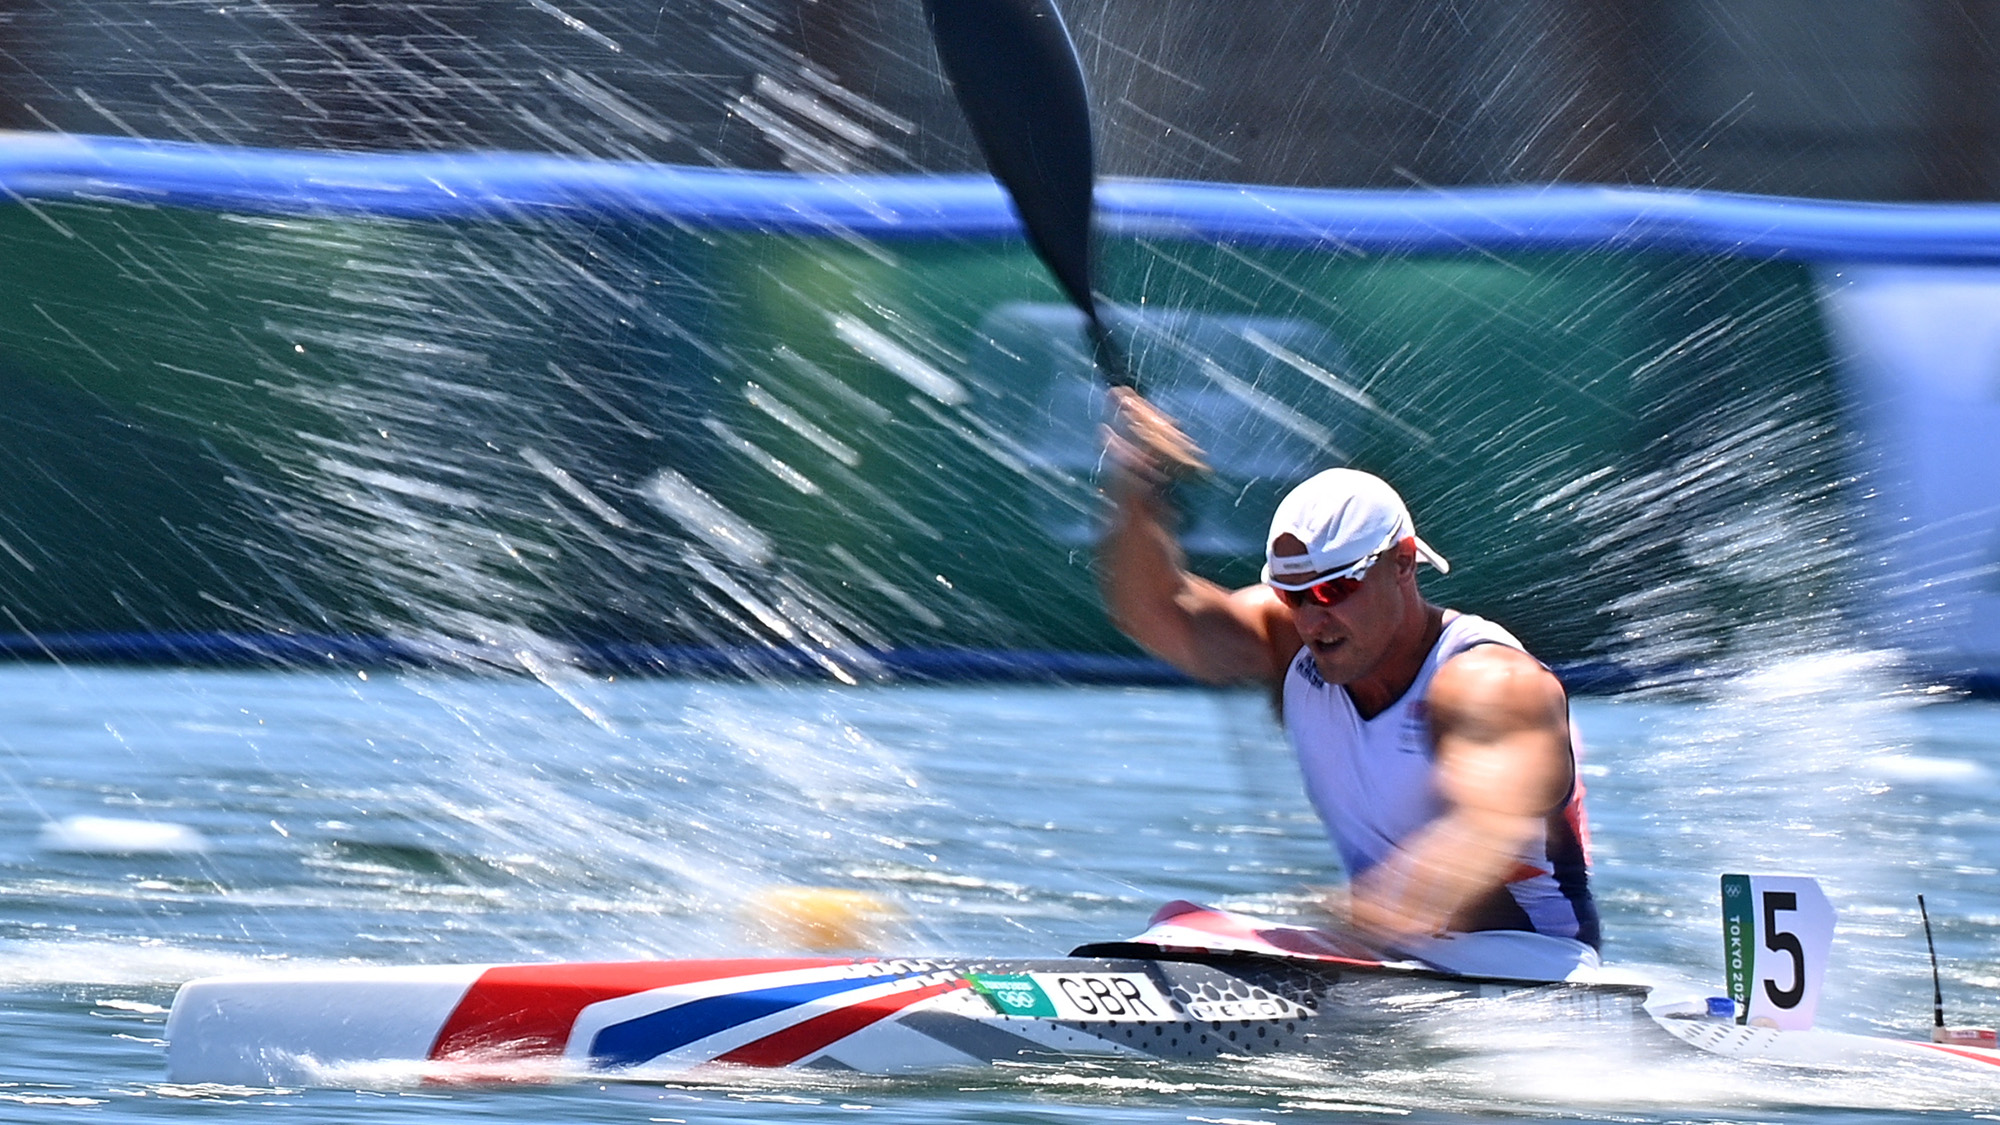 Liam Heath in the 200m single Kayak event at the Tokyo 2020 Olympic Games